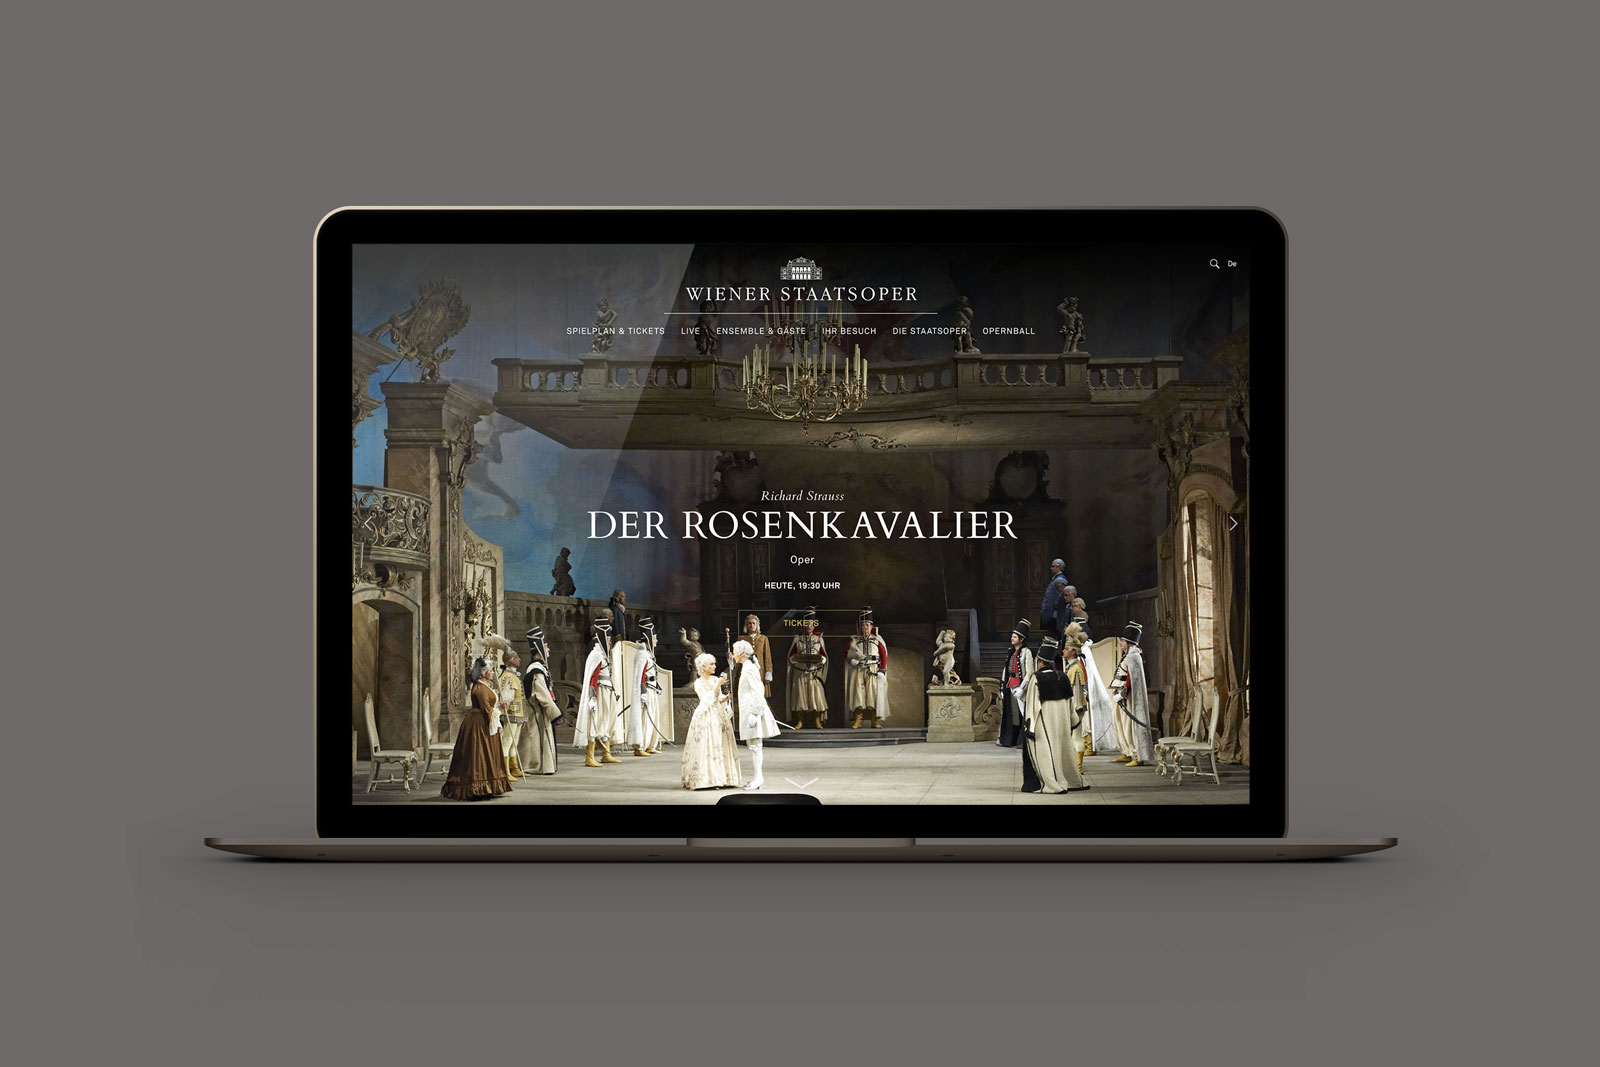 Staatsoper Wien Macbook 05